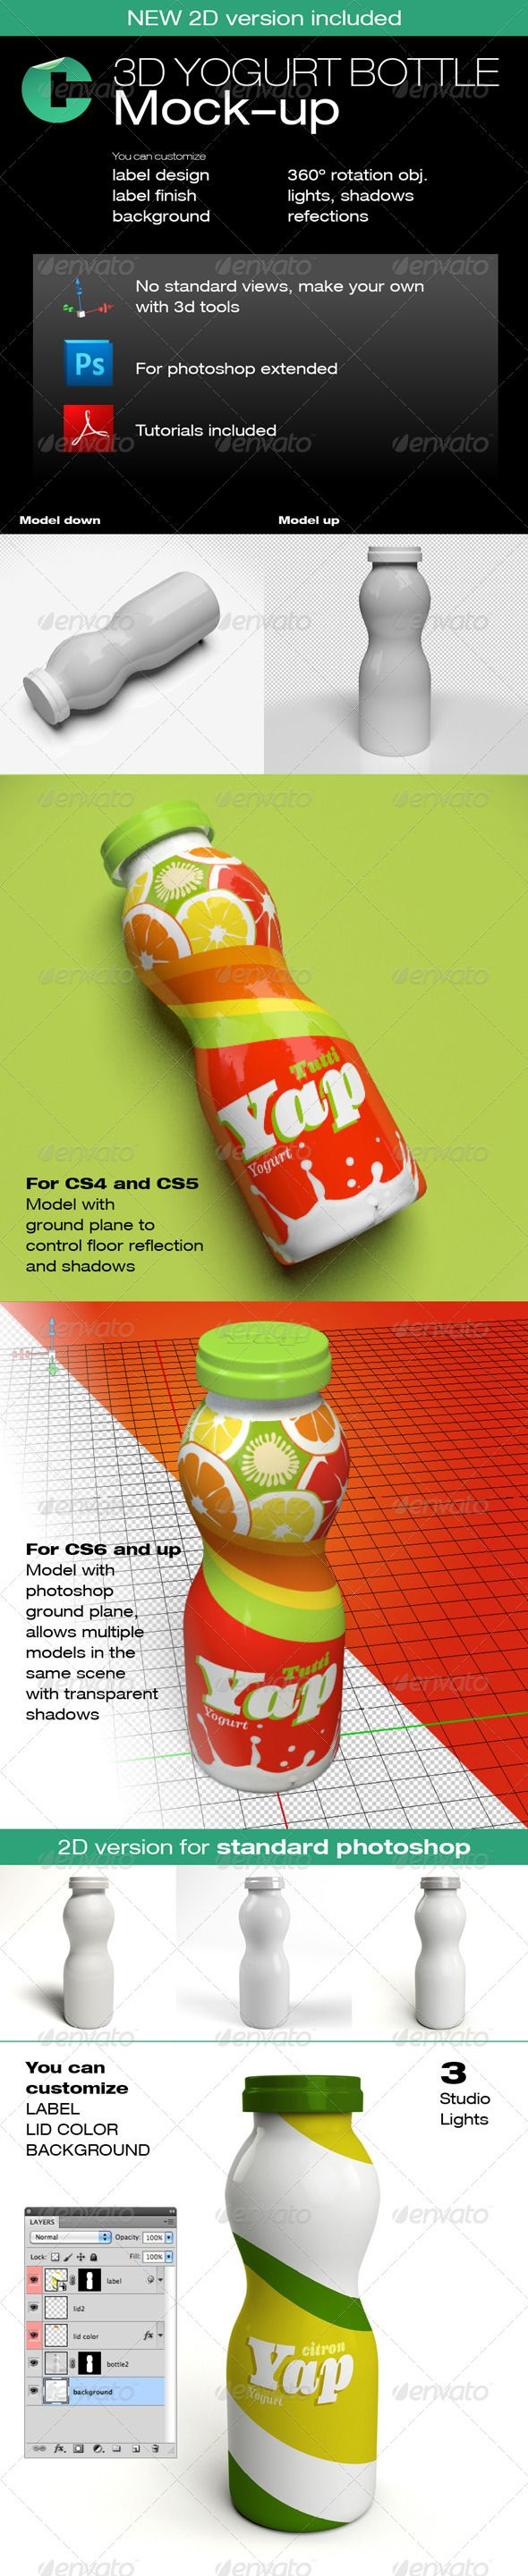 3d Object - Yogurt Bottle  #GraphicRiver         This product have 2 sets one compatible with Adobe Photoshop CS5 Extended and CS6 Extended (3d files) and other compatible with Adobe Photoshop CS standard version (2d